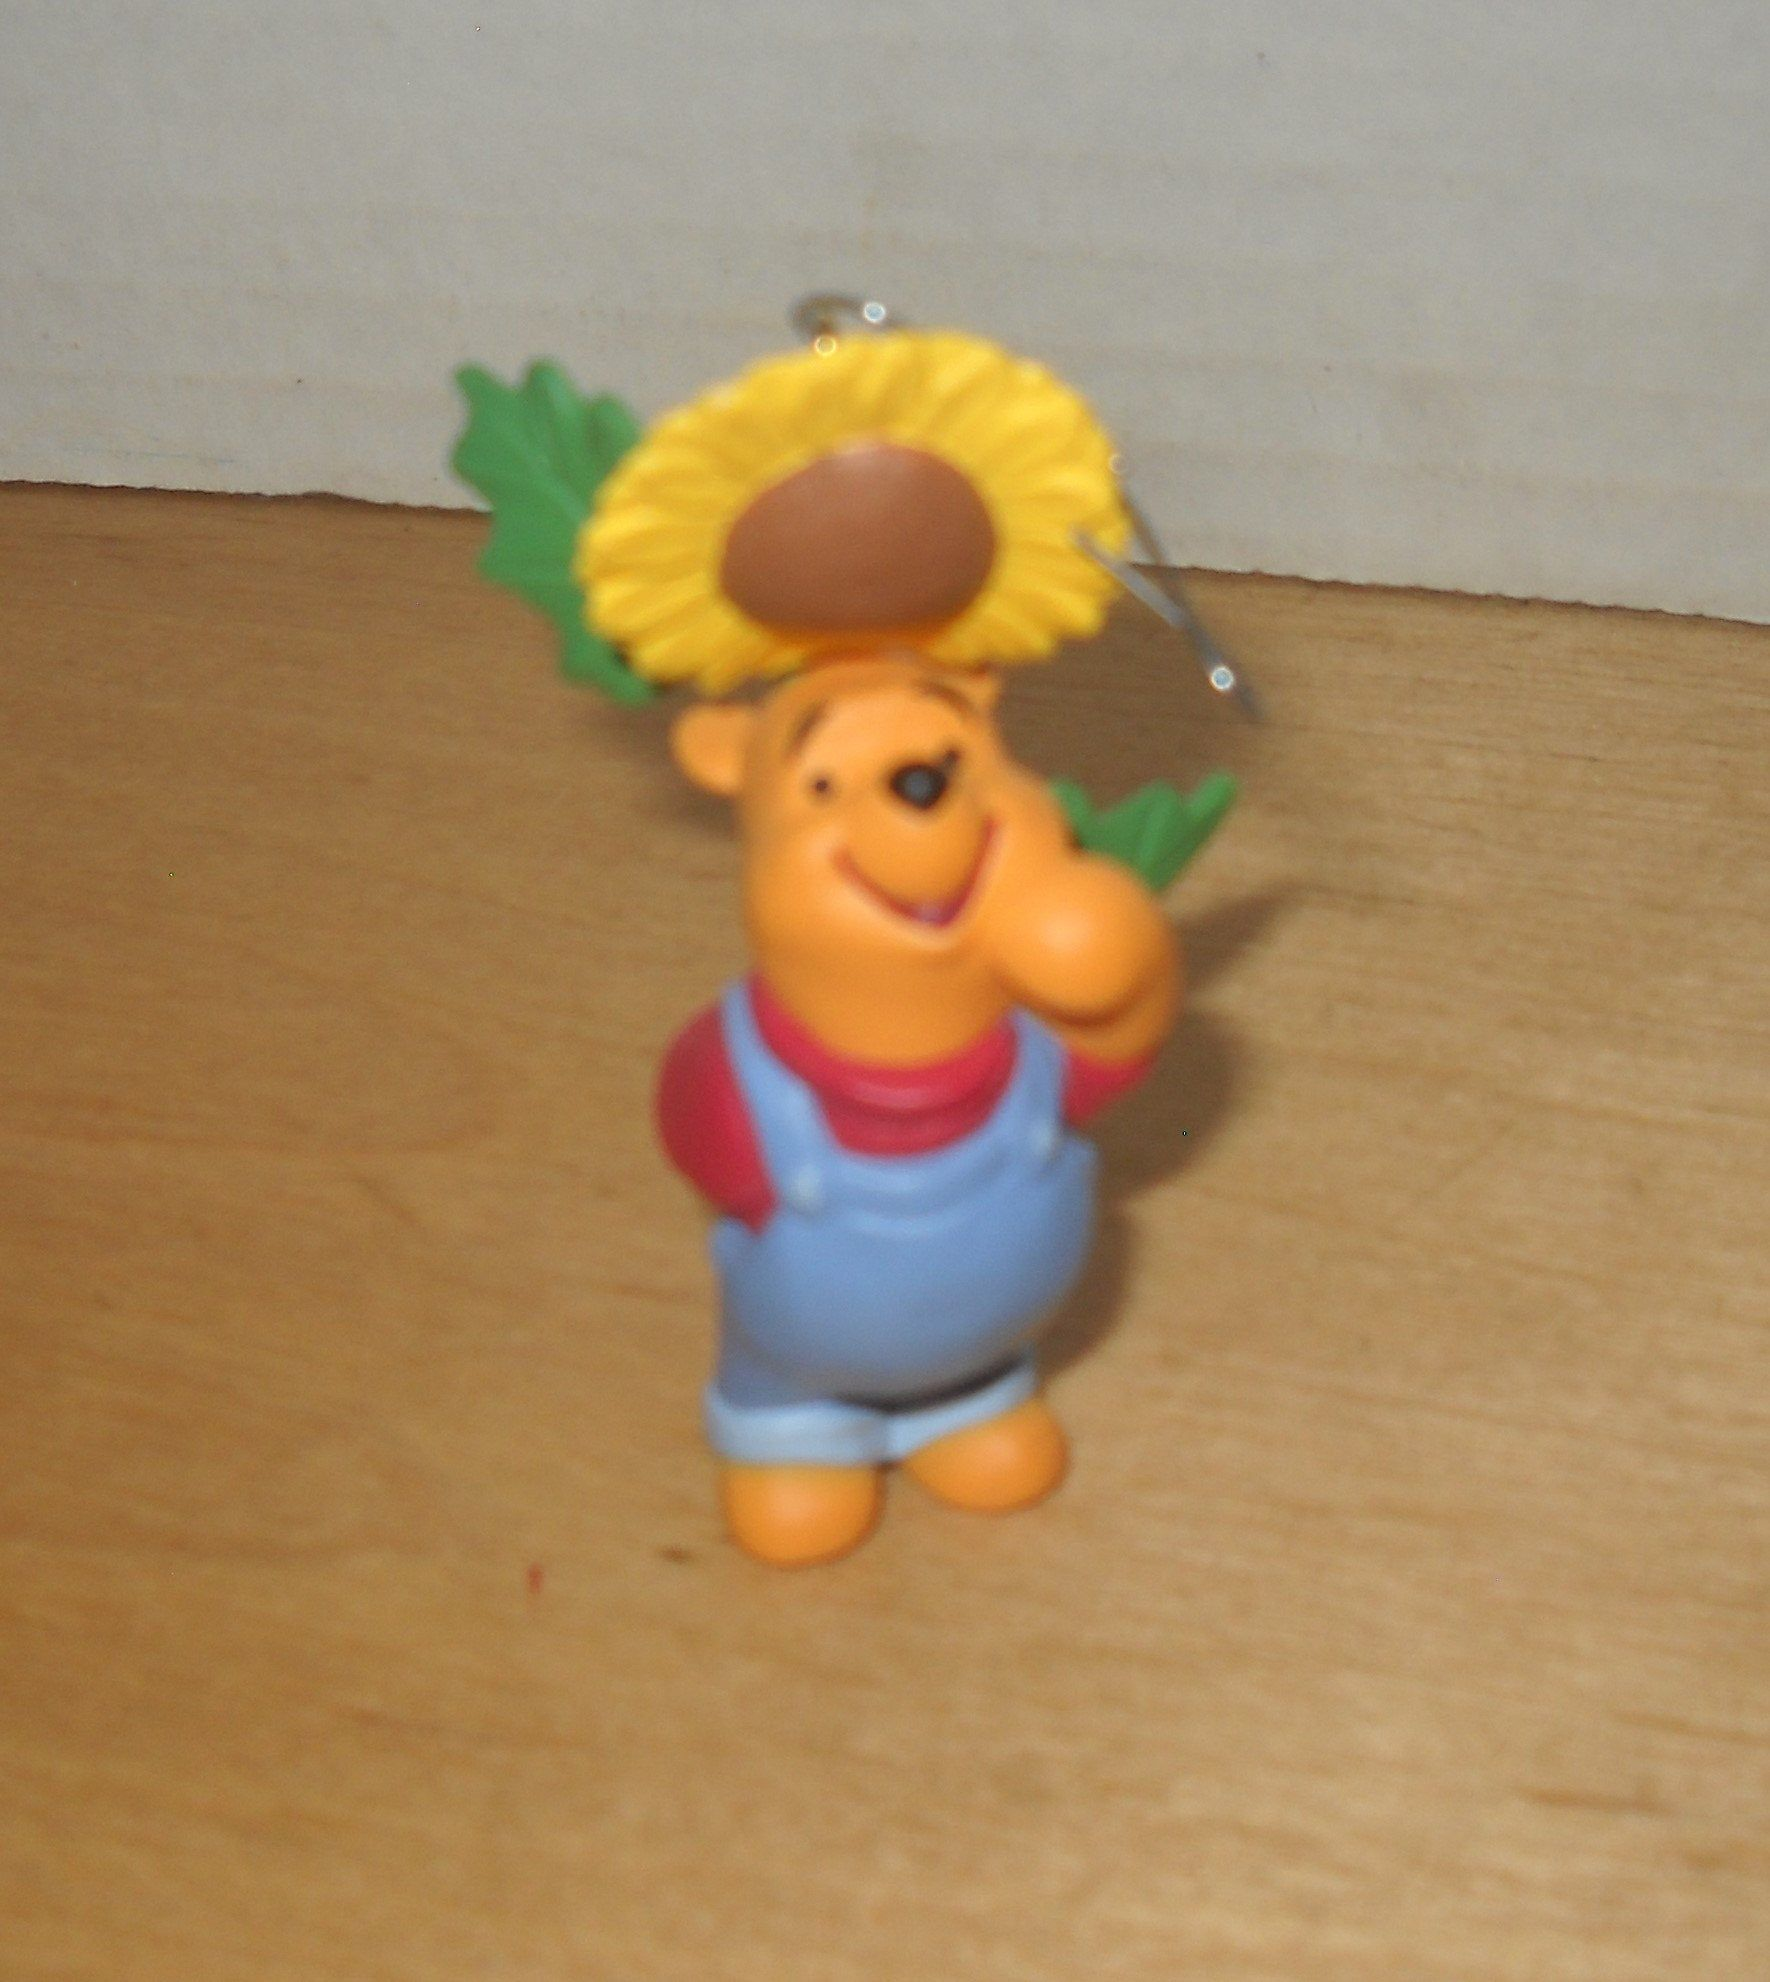 Christmas tree ornament Hallmark Disney Winnie the Pooh bear sunflower 2 1/4 tall #sunflowerchristmastree